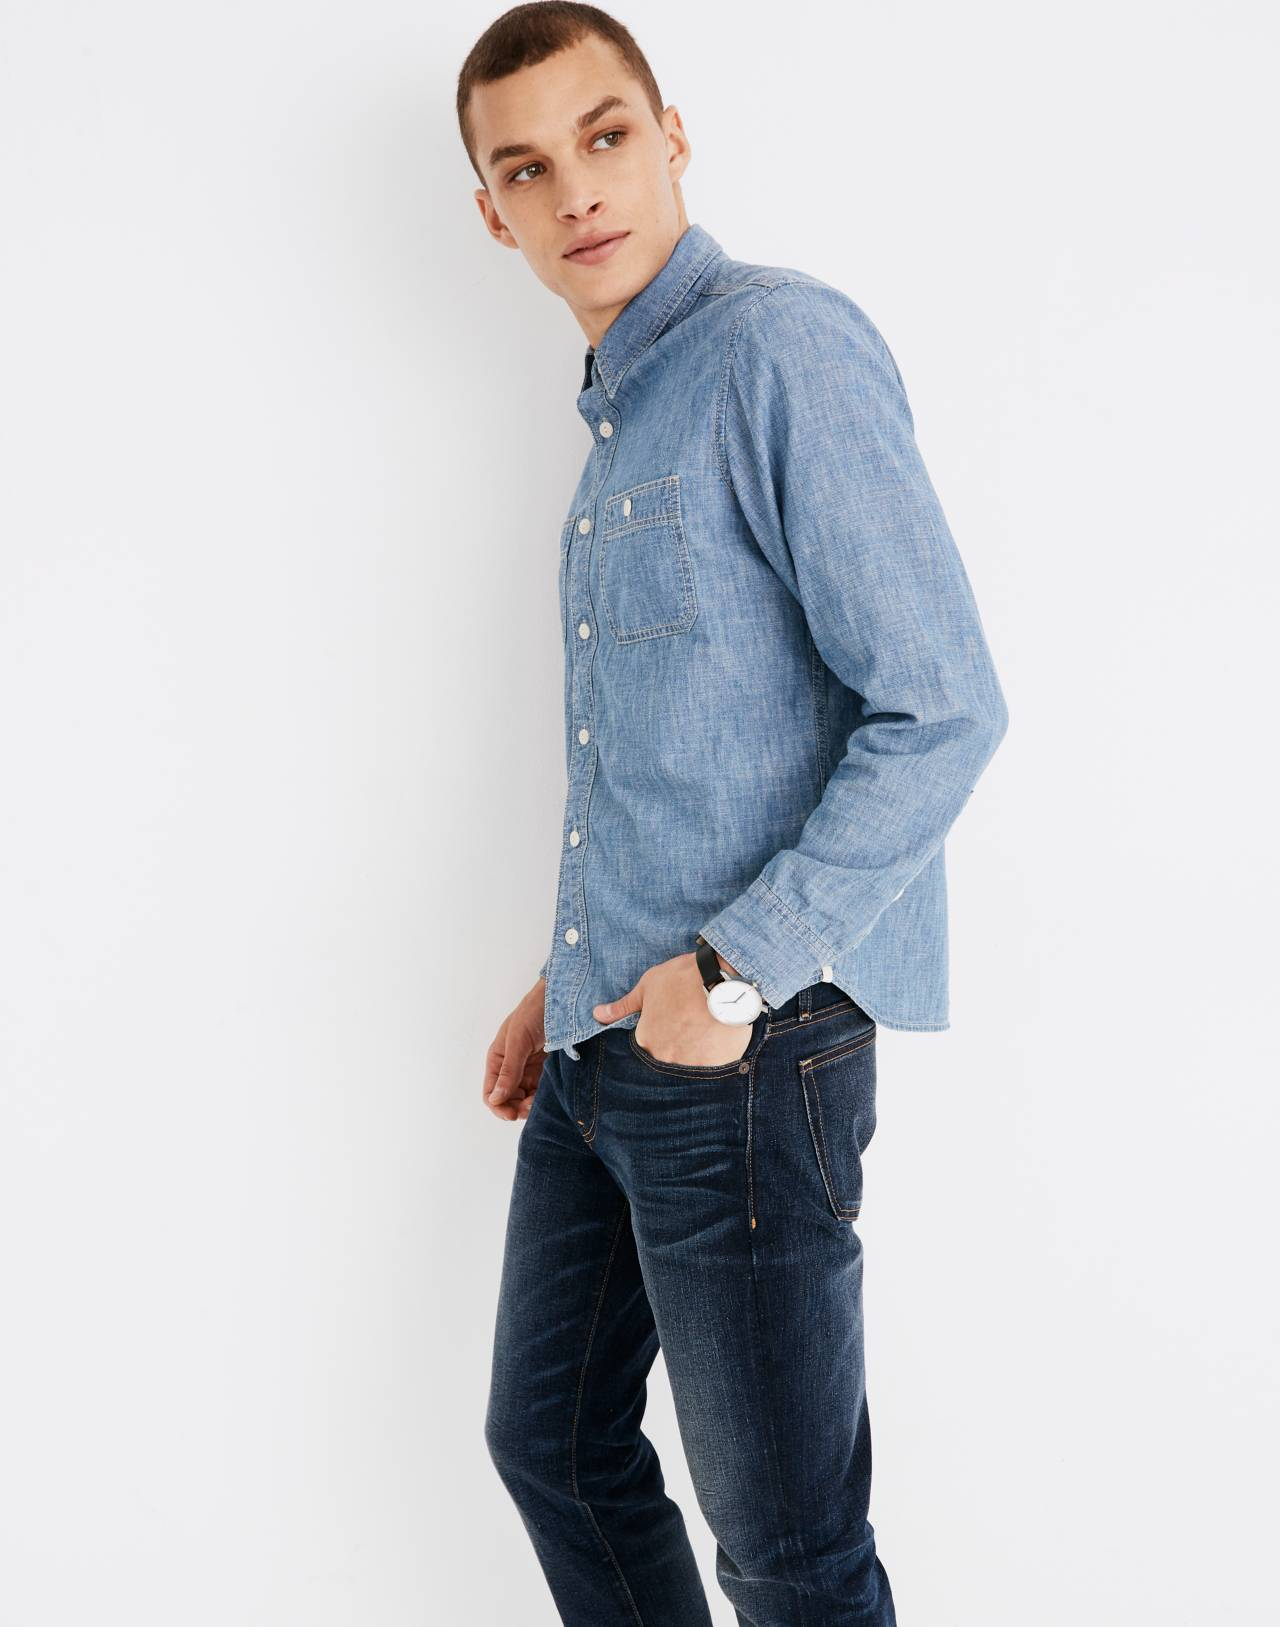 Chambray Button-Down Shirt in Lessing Wash in lessing wash image 2